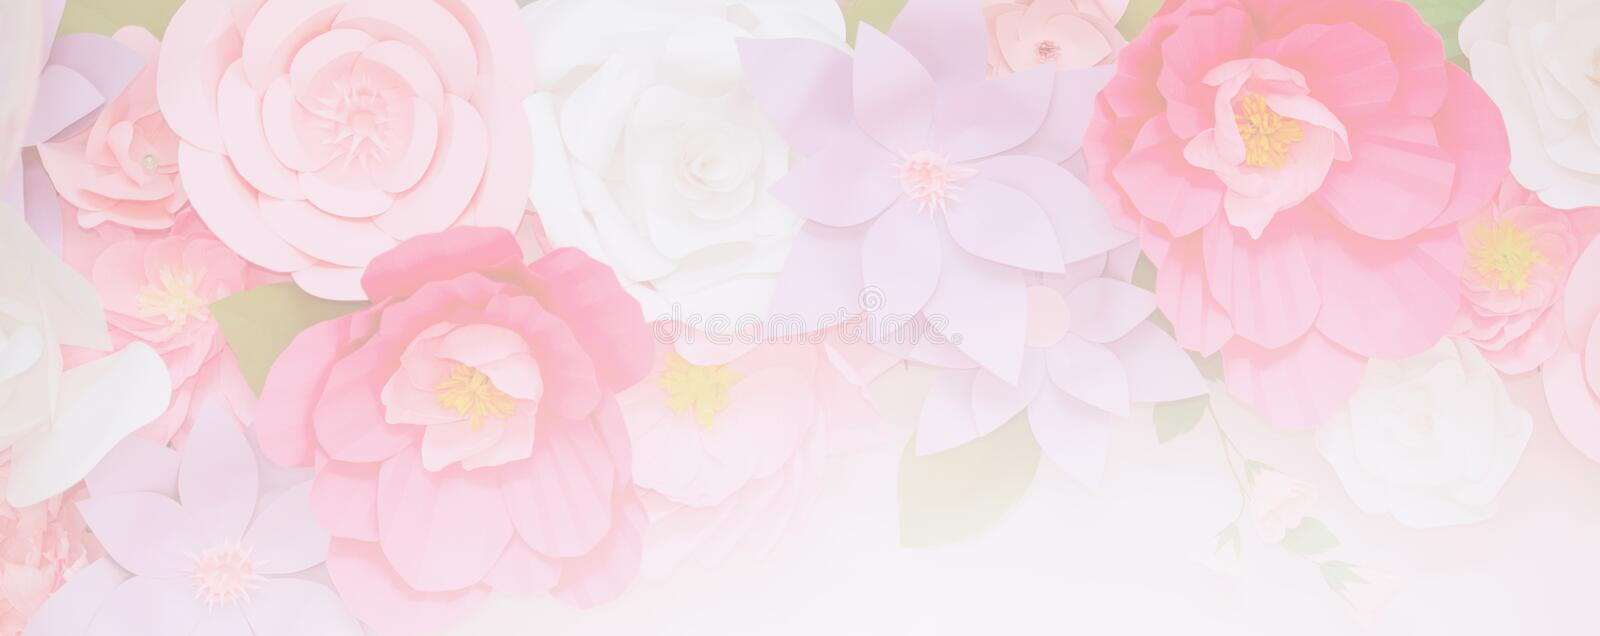 Light pink flowers in soft color. For landing page background royalty free stock images